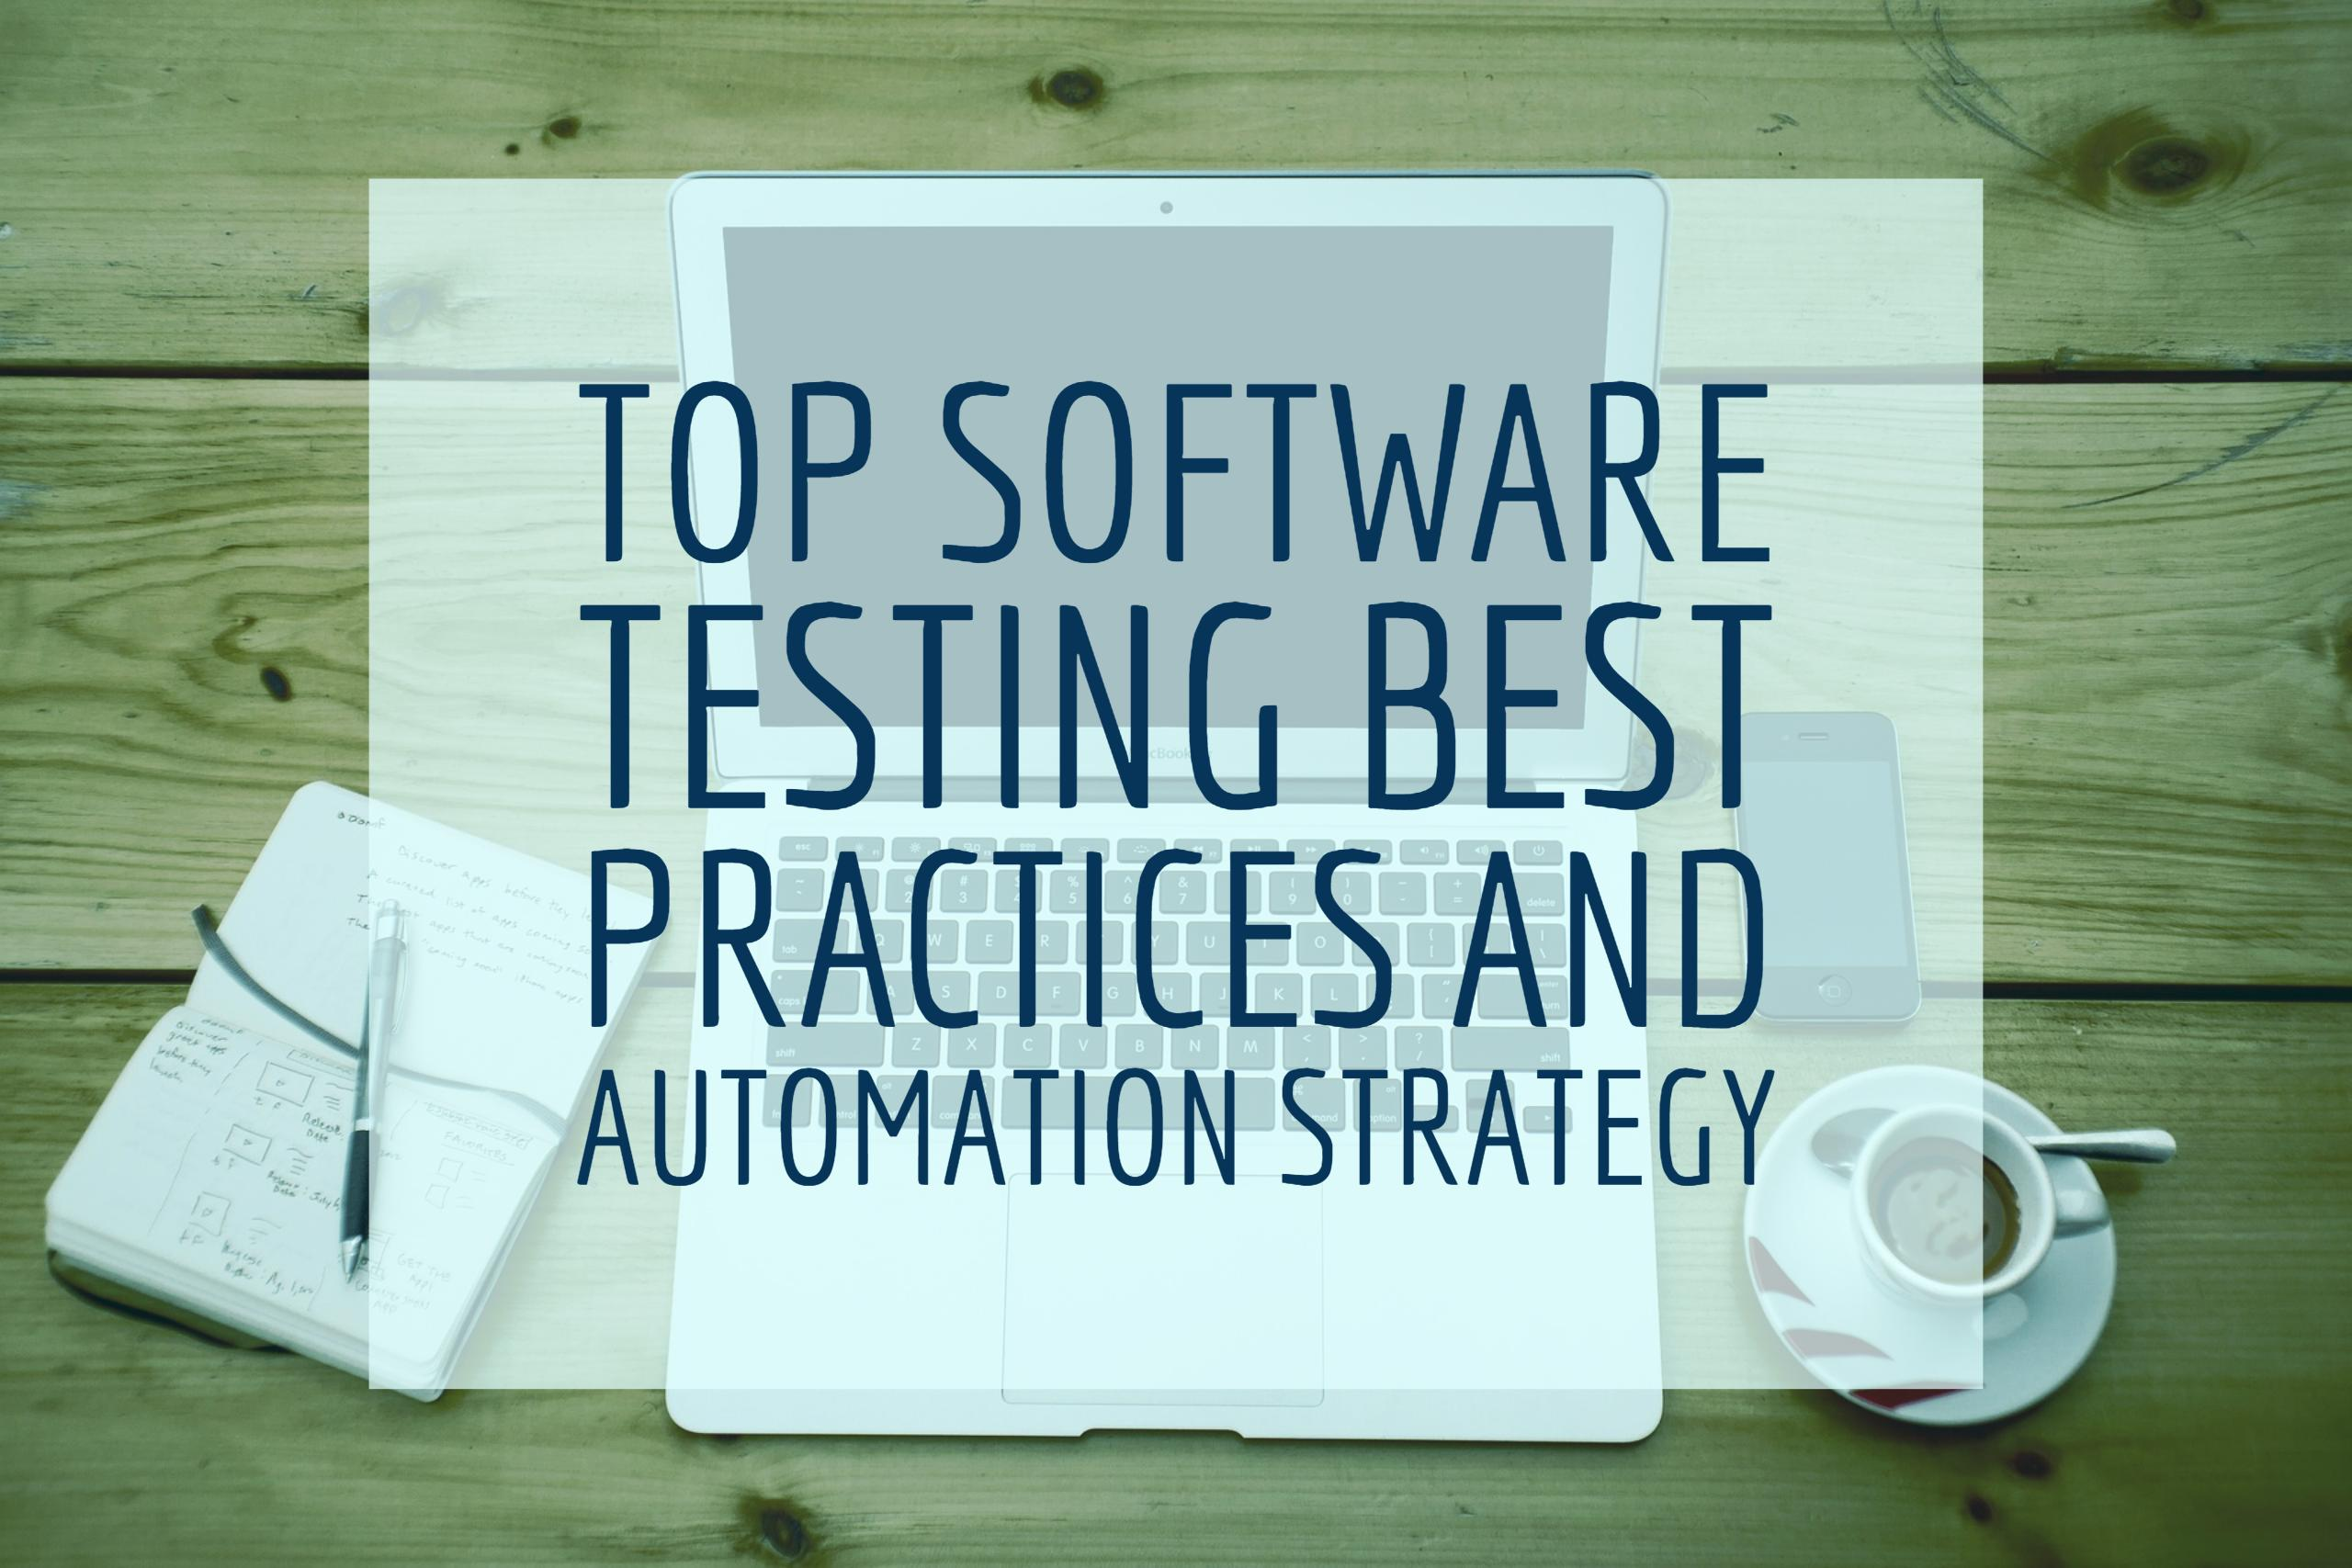 Top Software Testing Best Practices and Automation Strategy